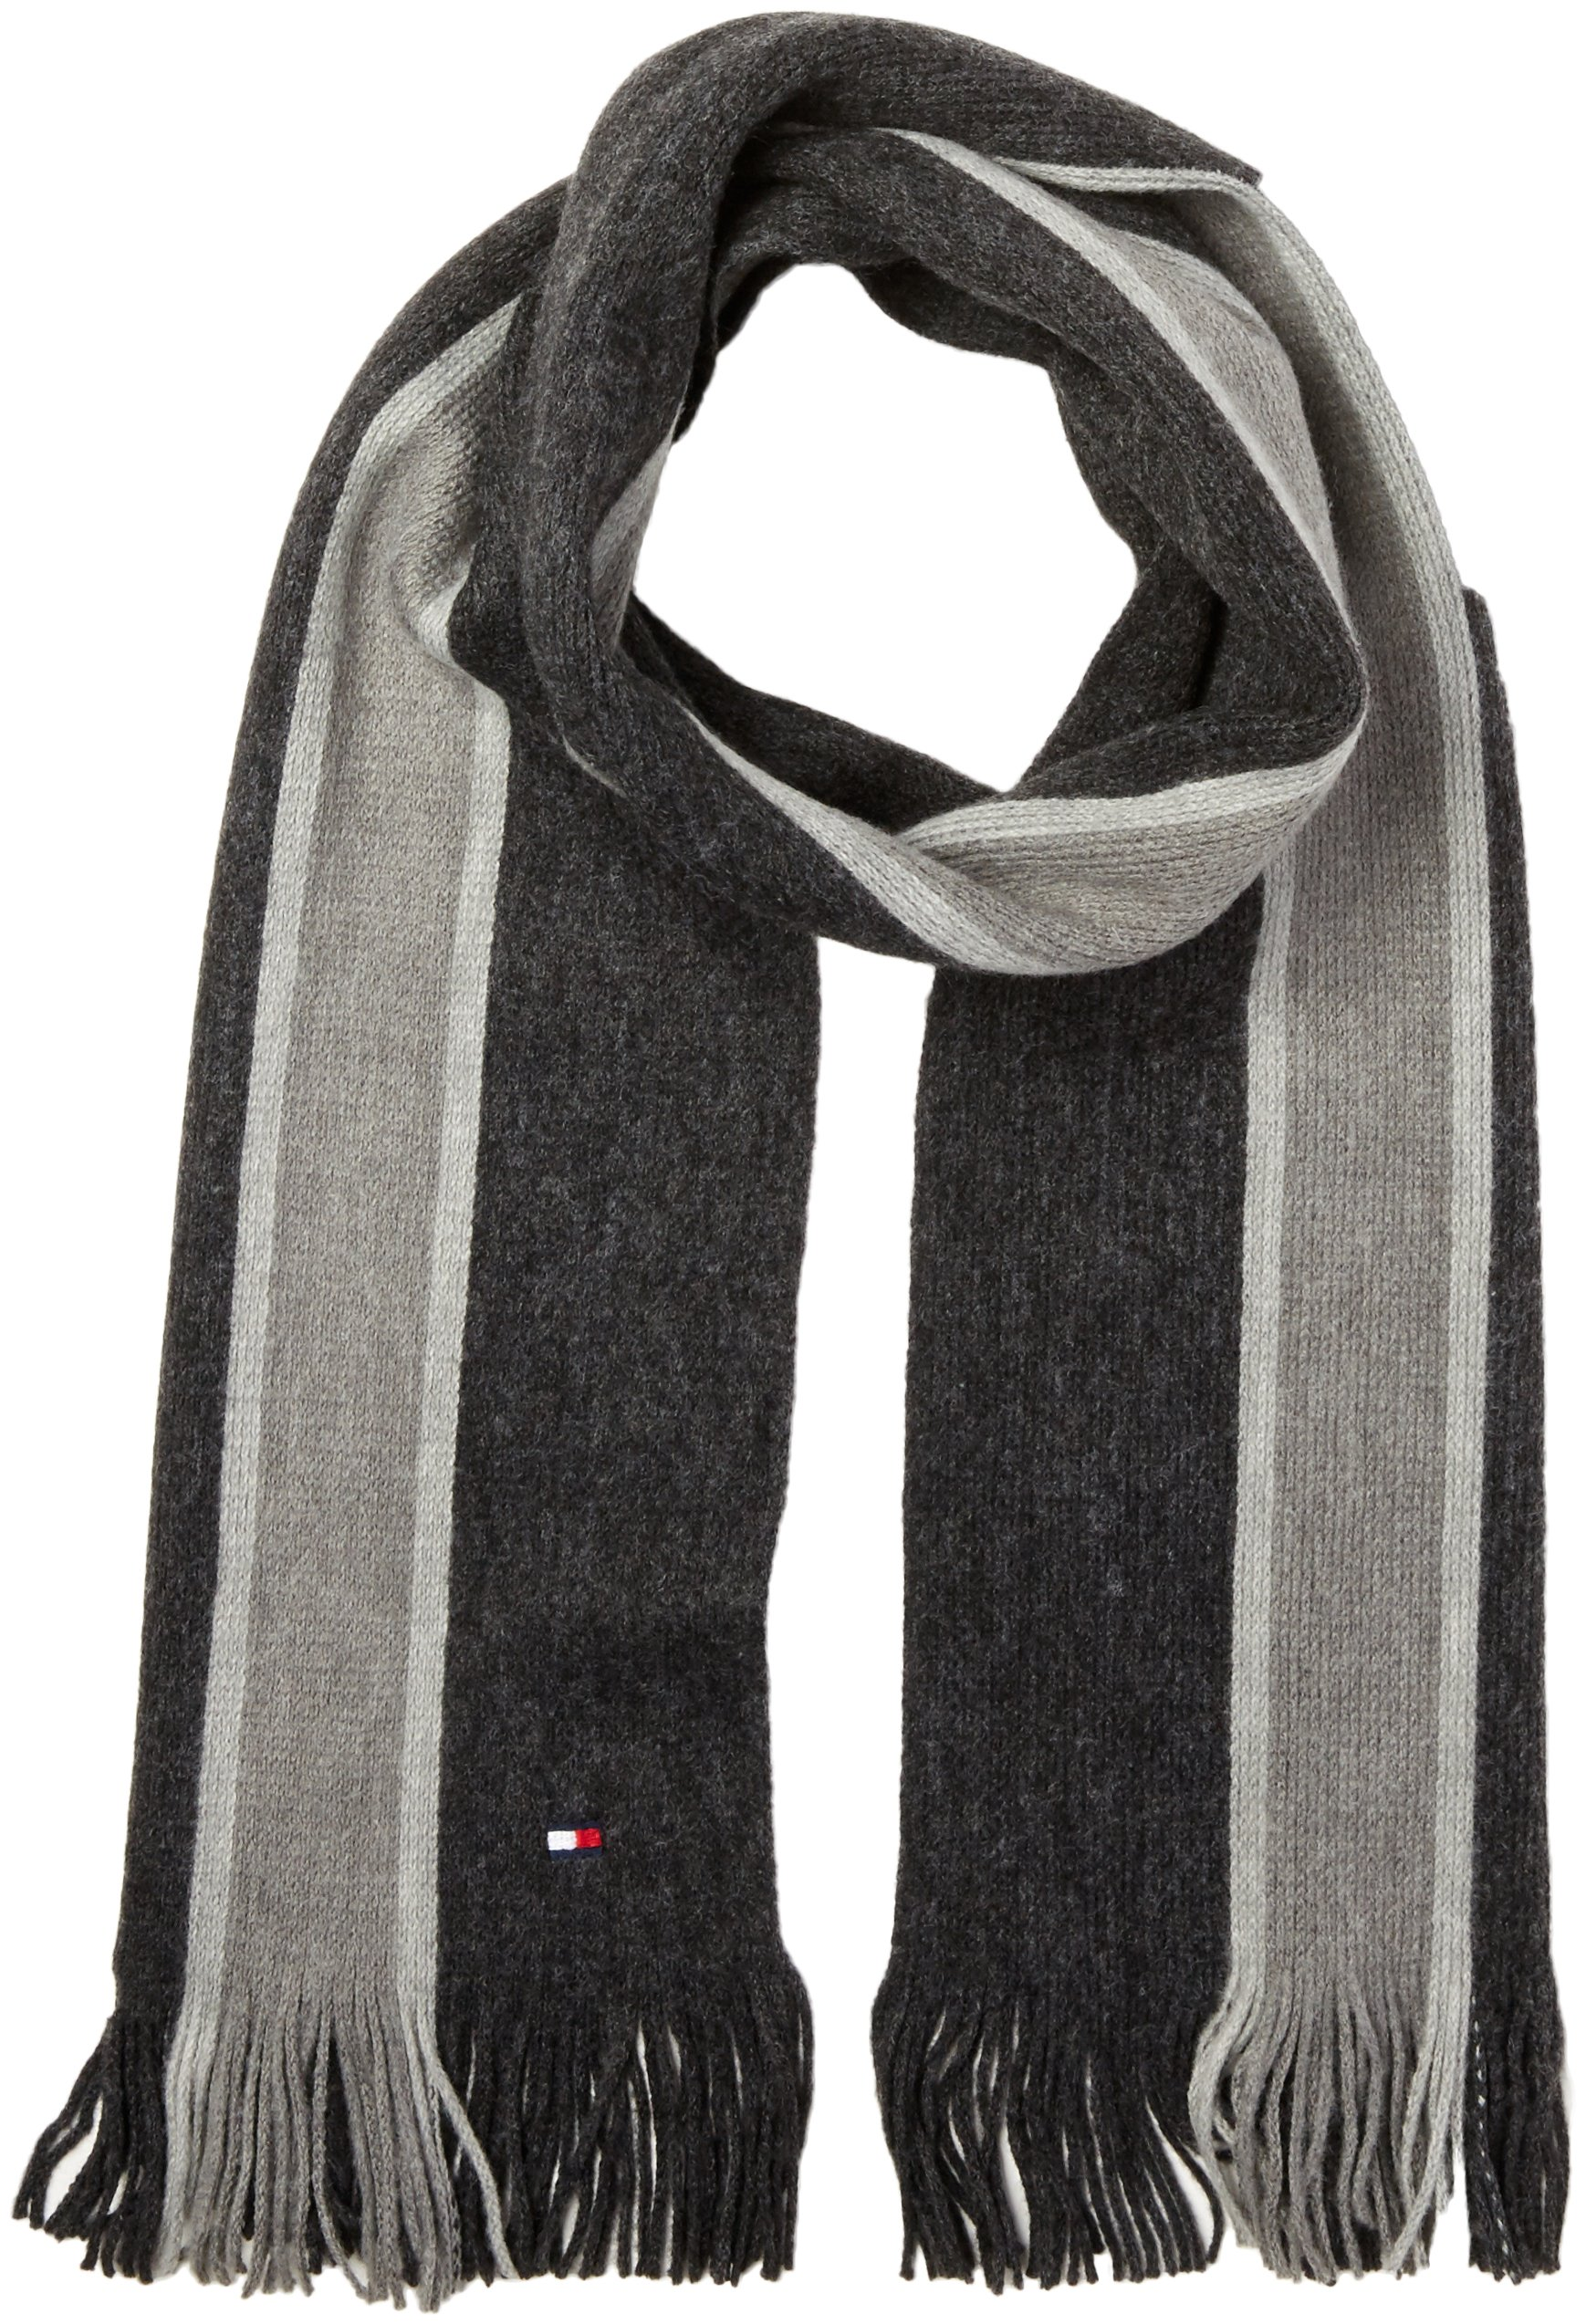 Tommy Hilfiger Men's Striped Scarf, charcoal, OS